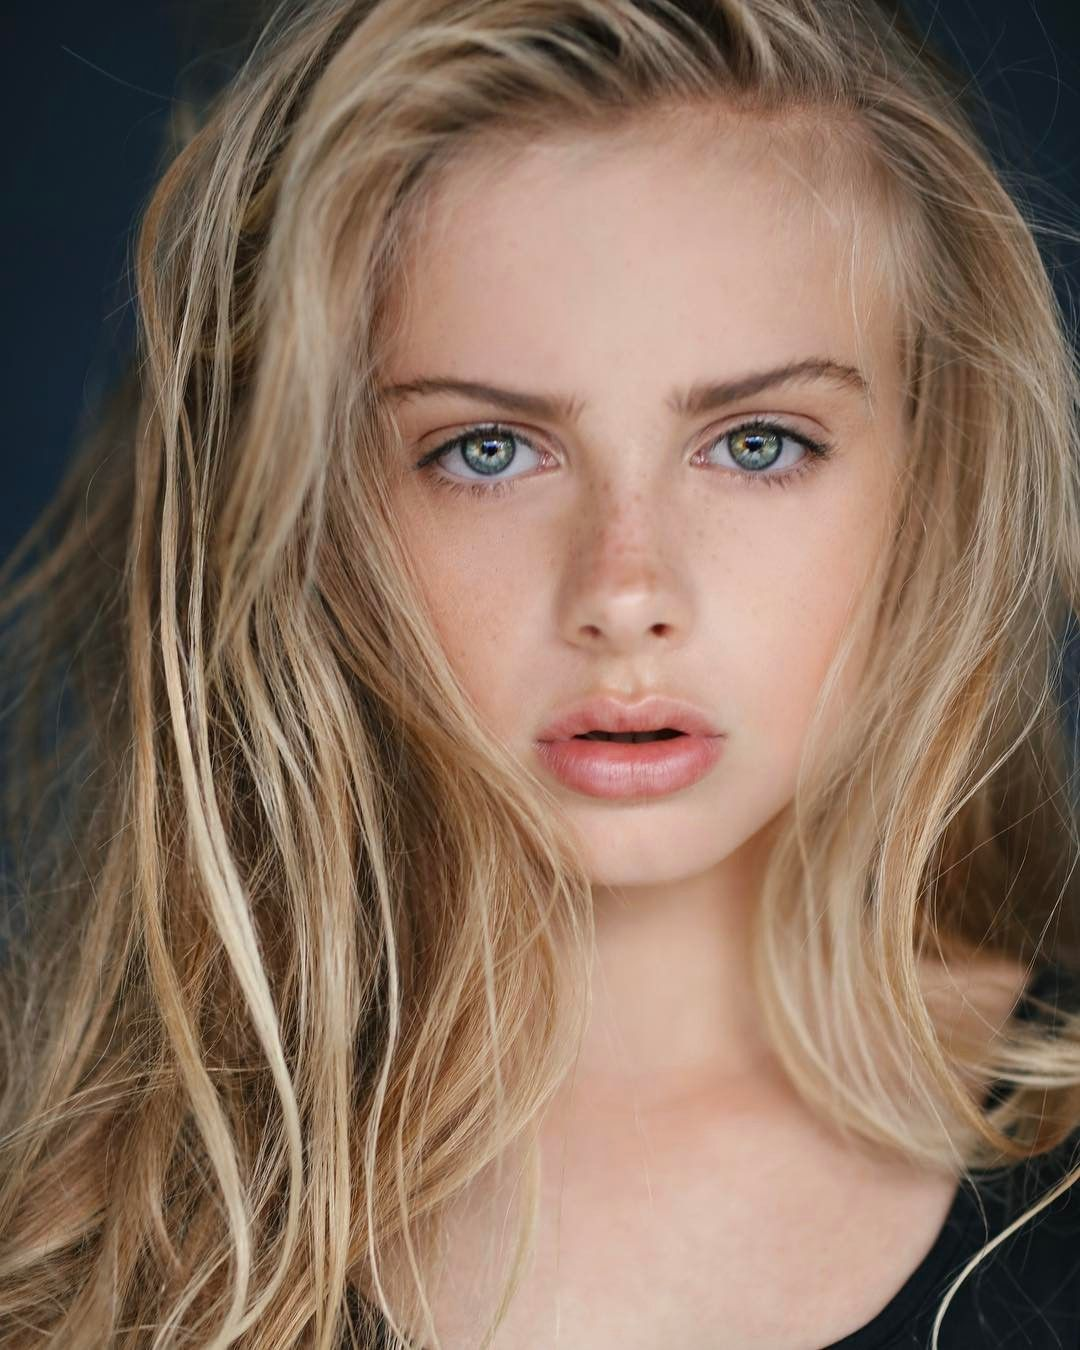 How To Make A blonde Hair Blue Eyes Girl Even More Endearing